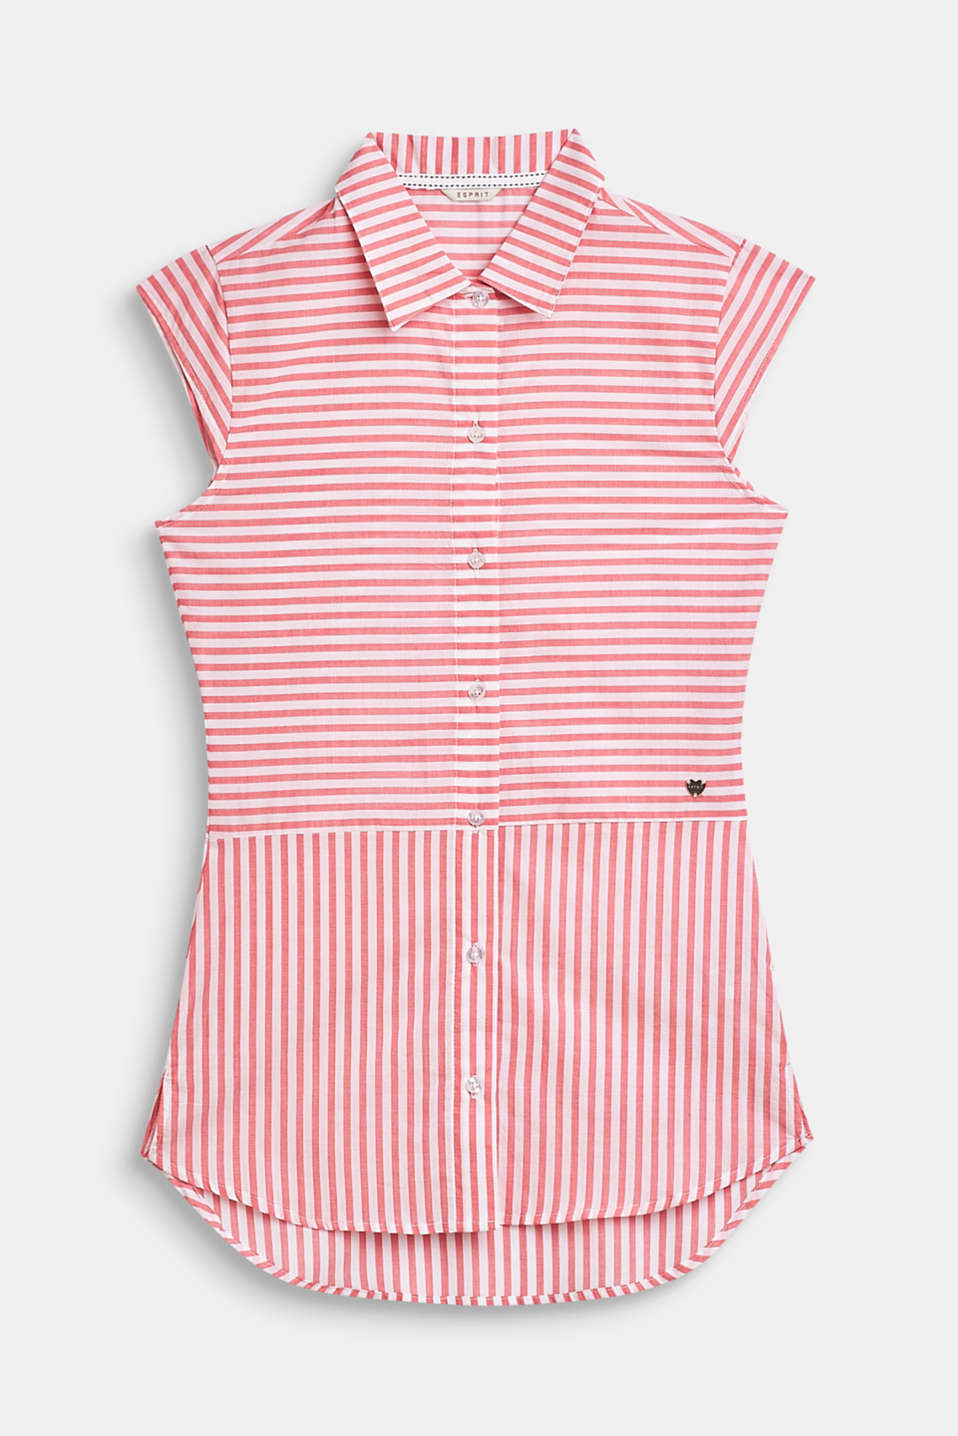 Esprit - Striped, woven nightshirt made of 100% cotton